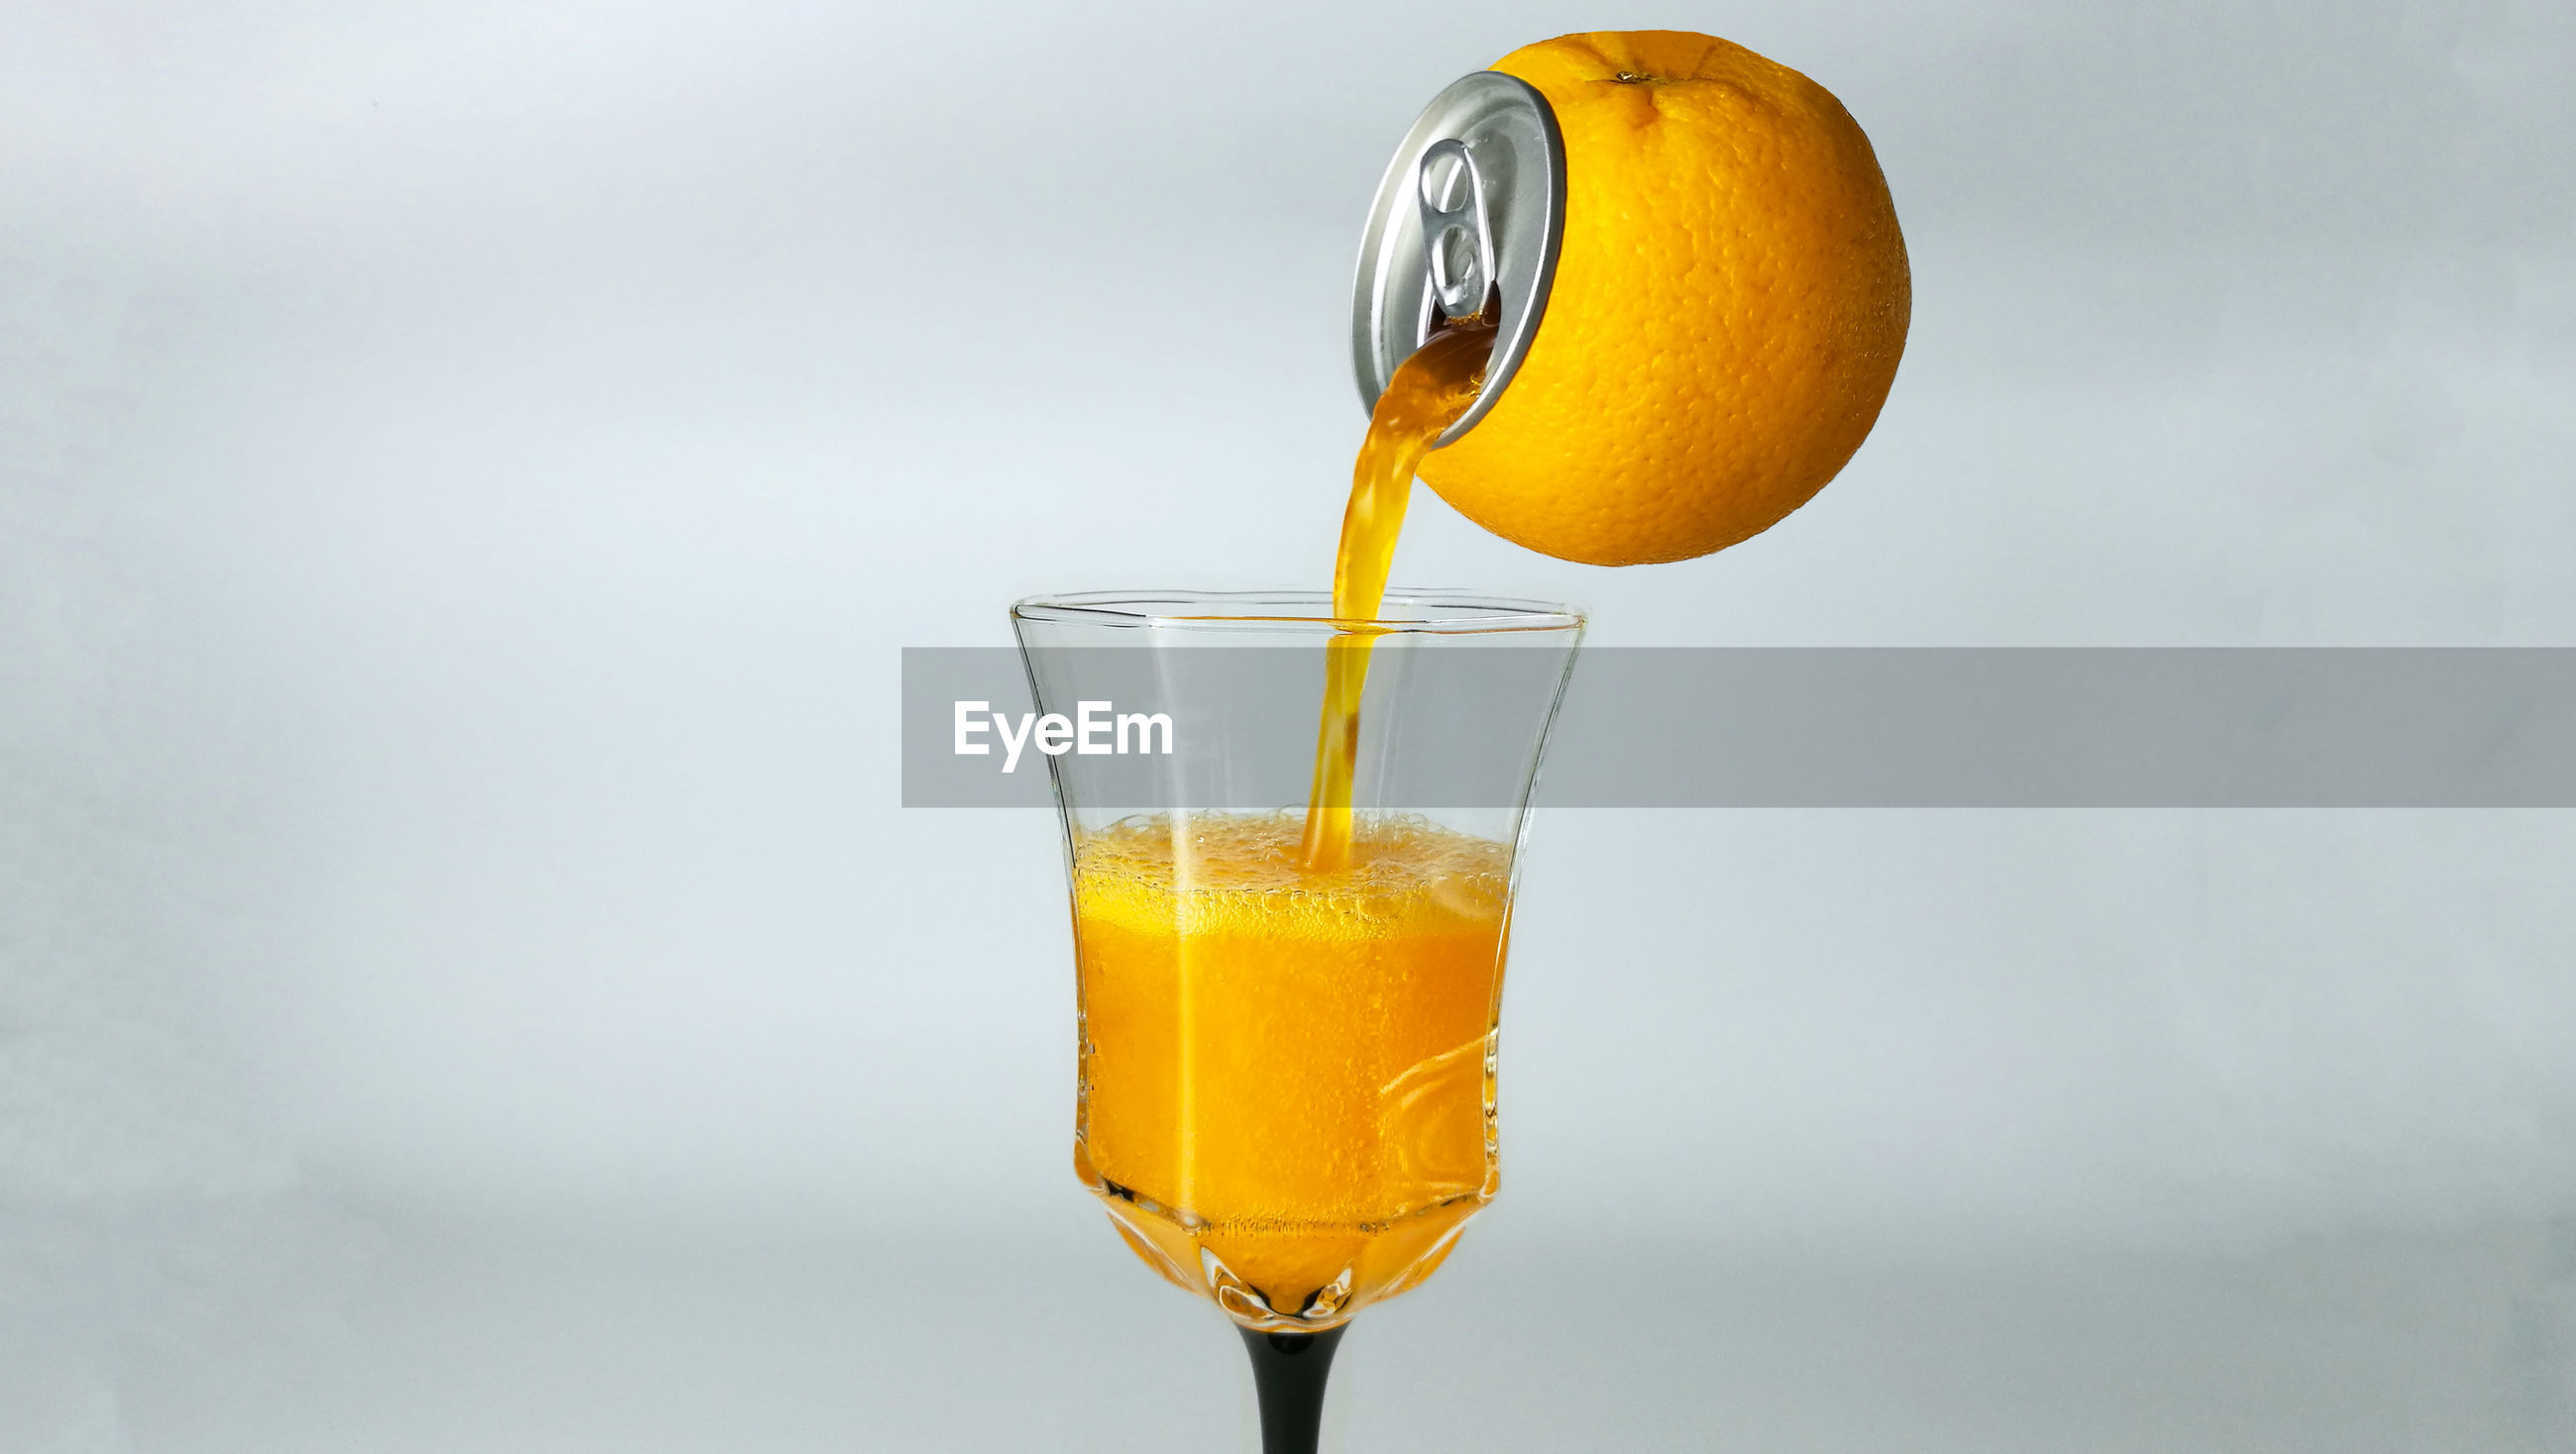 Digital composite image of orange pouring drink in glass